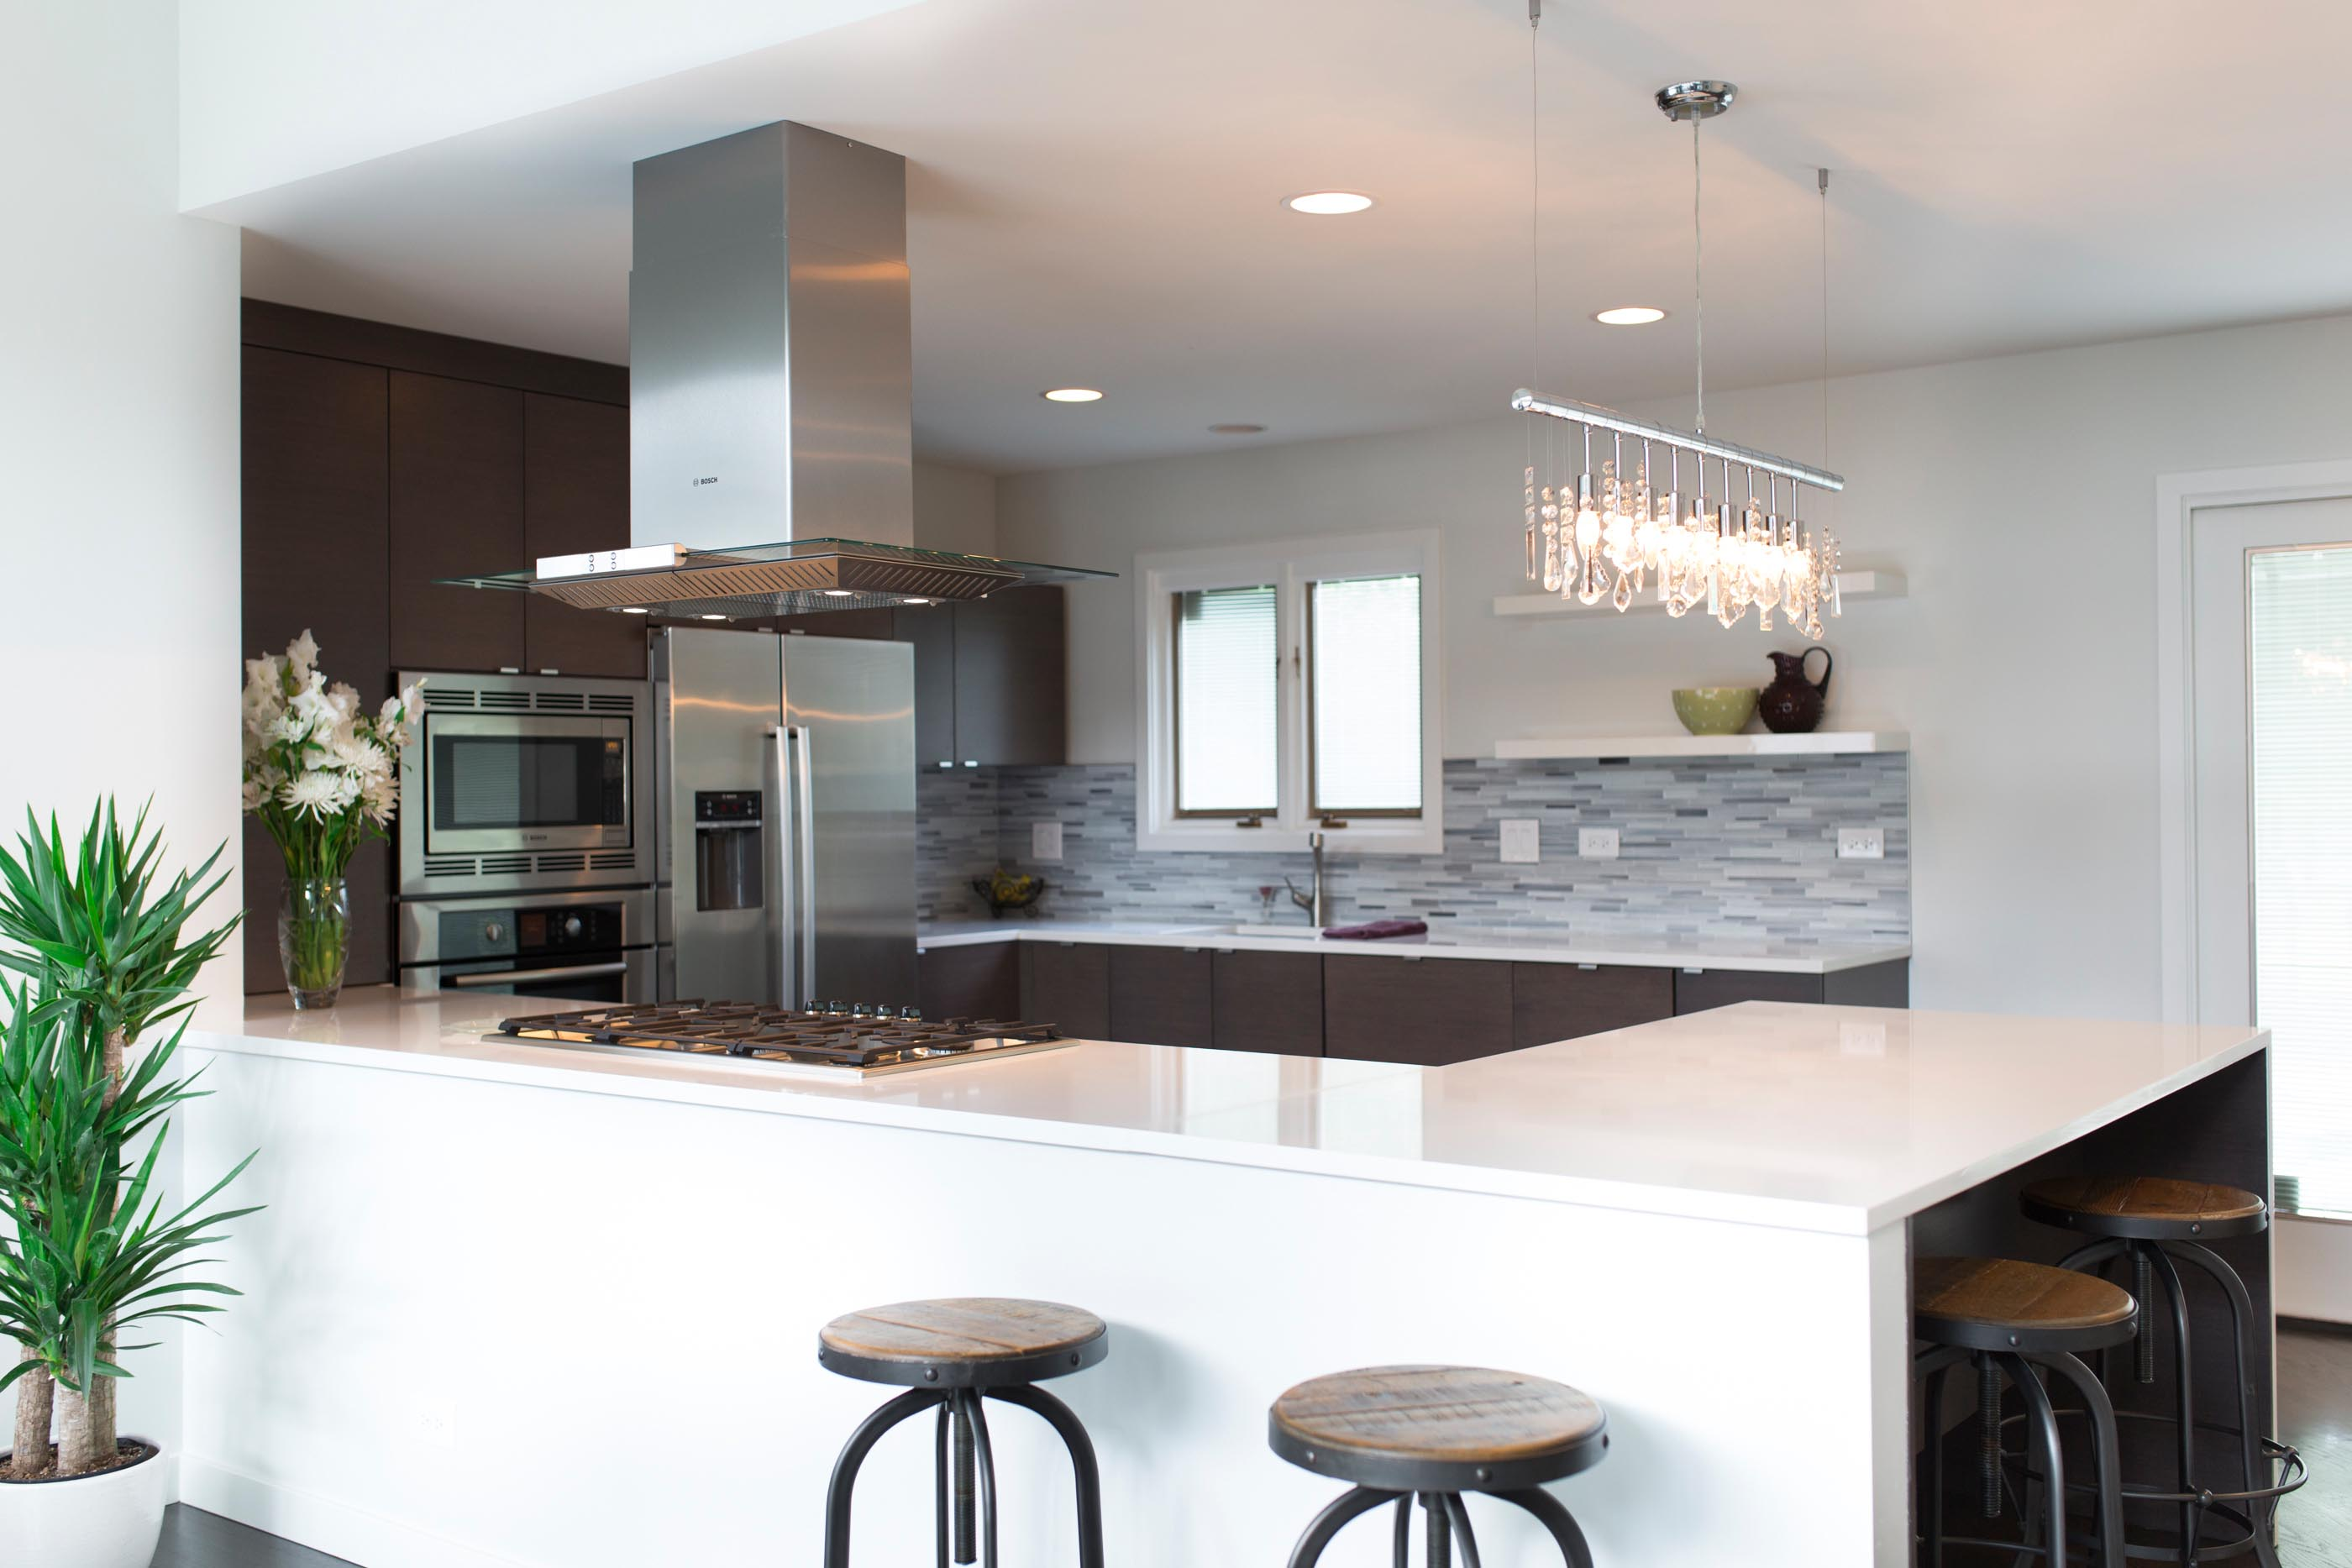 Specify-Design-Kitchen-Illinois